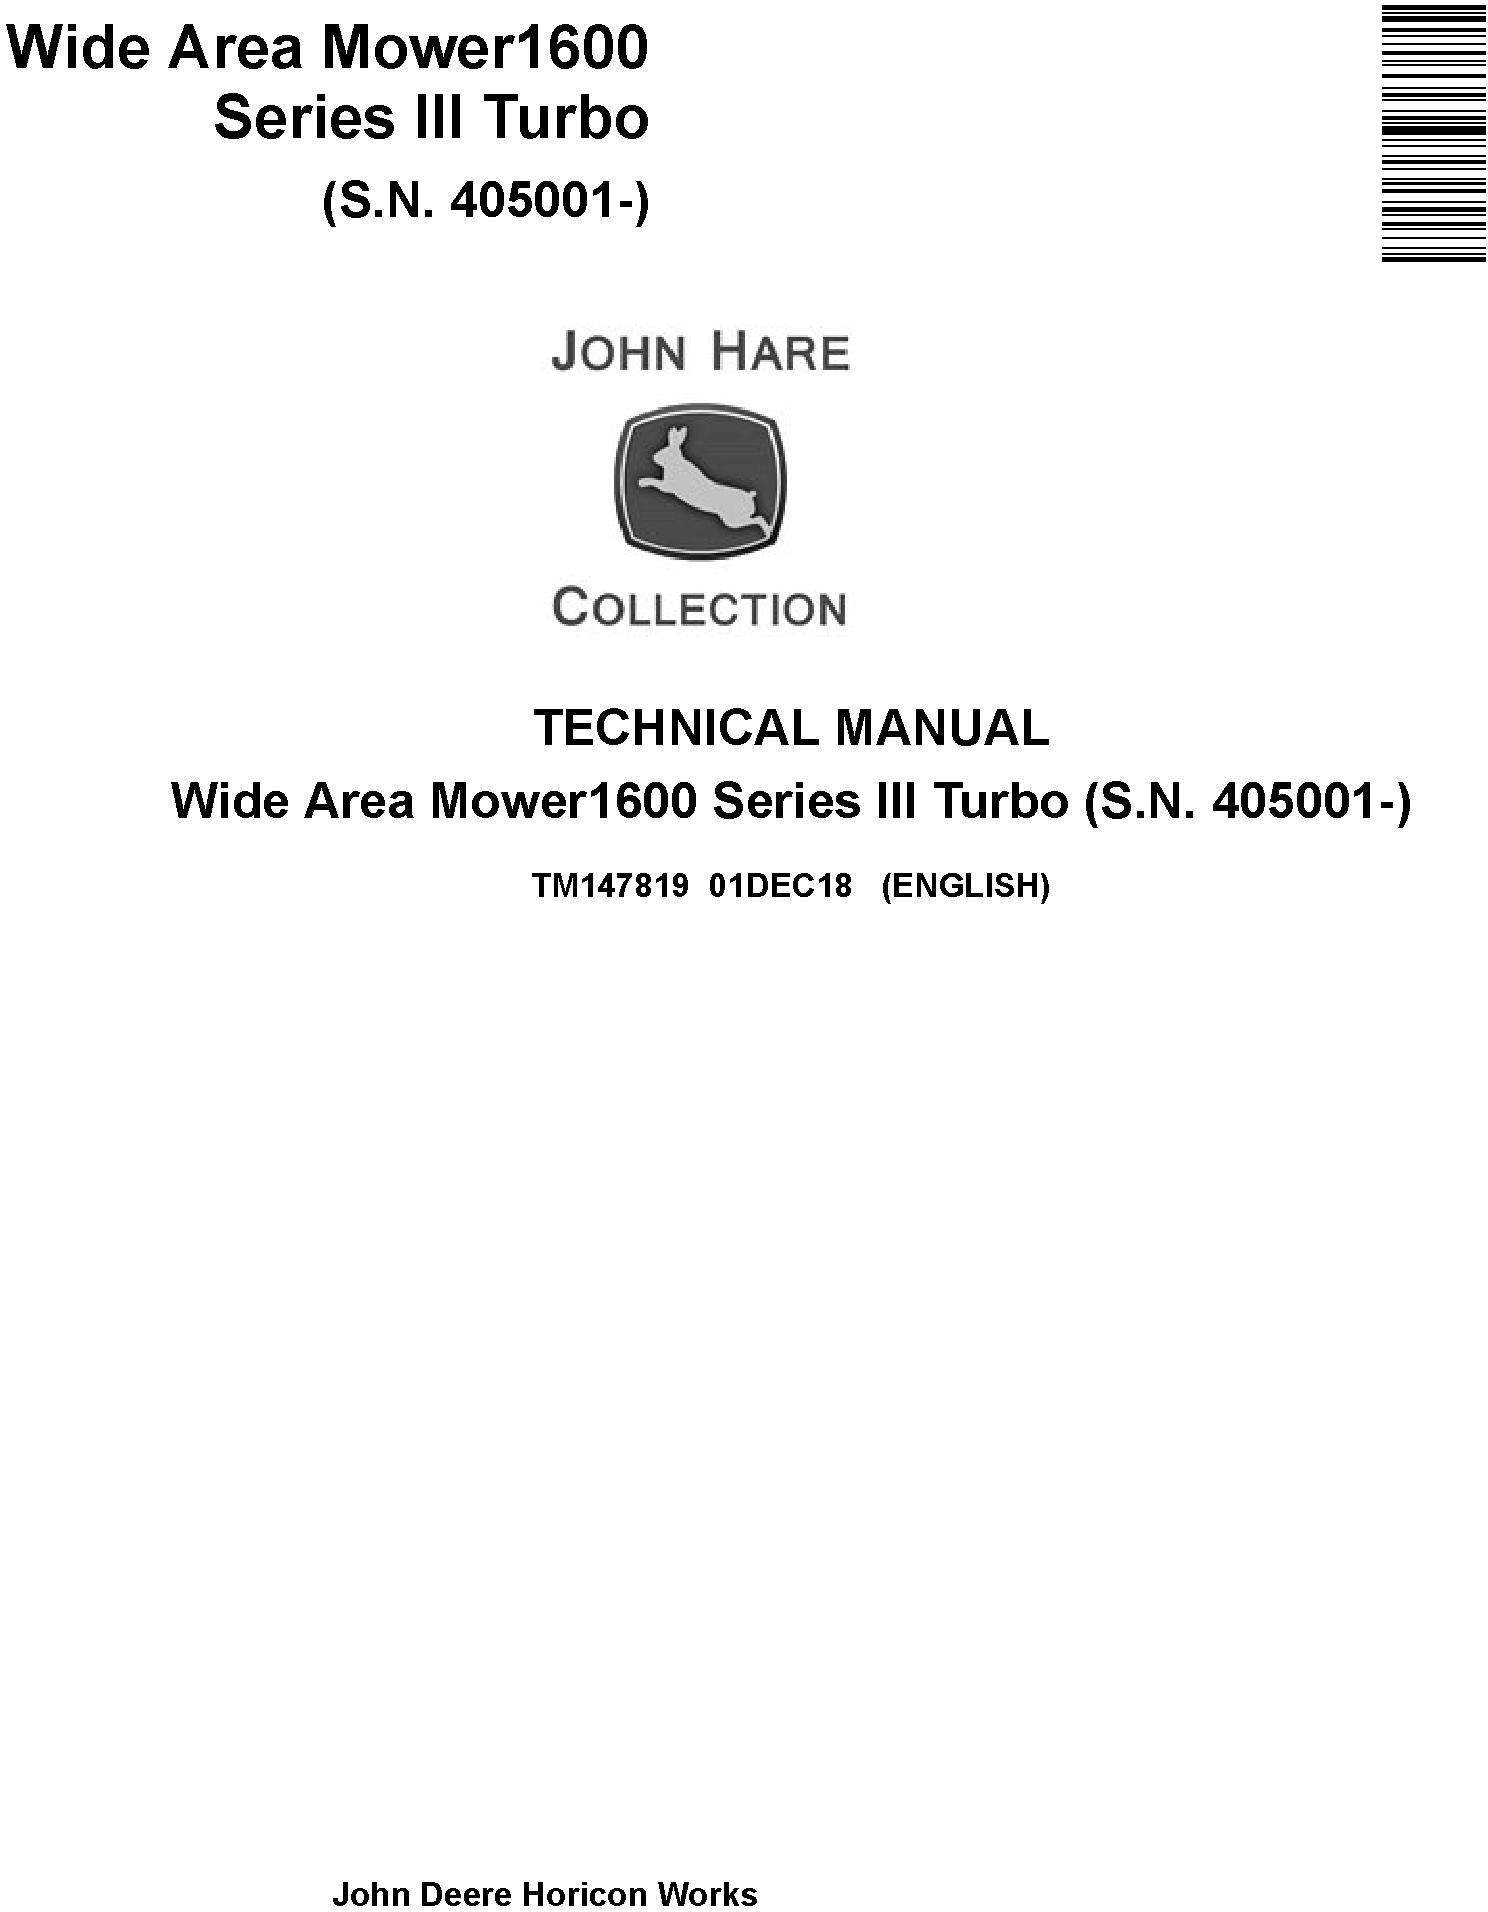 John Deere Wide Area Mower1600 Series III Turbo (SN. 405001-) Technical Manual (TM147819) - 19291